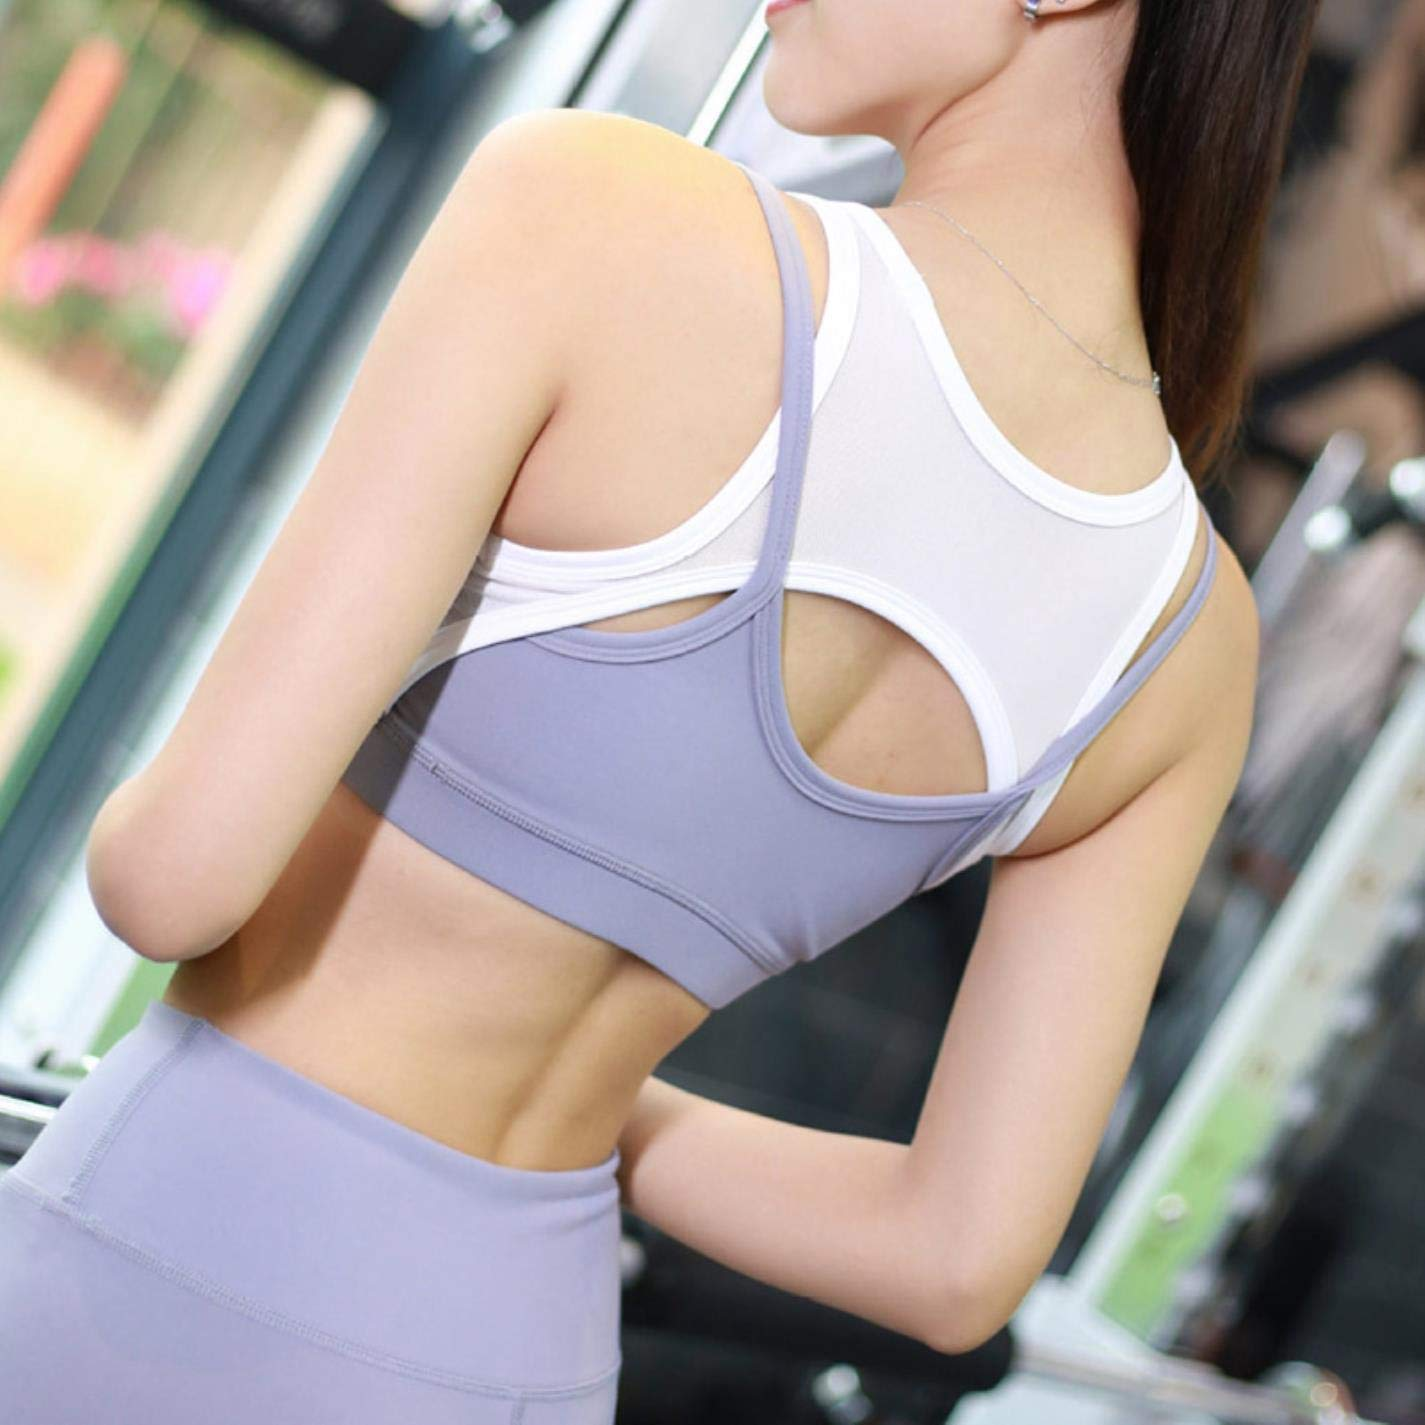 EBVJ Womens Sports Bra for Fitness Yoga Running Pad Cropped Top Sportswear Vest at Amazon Womens Clothing store: